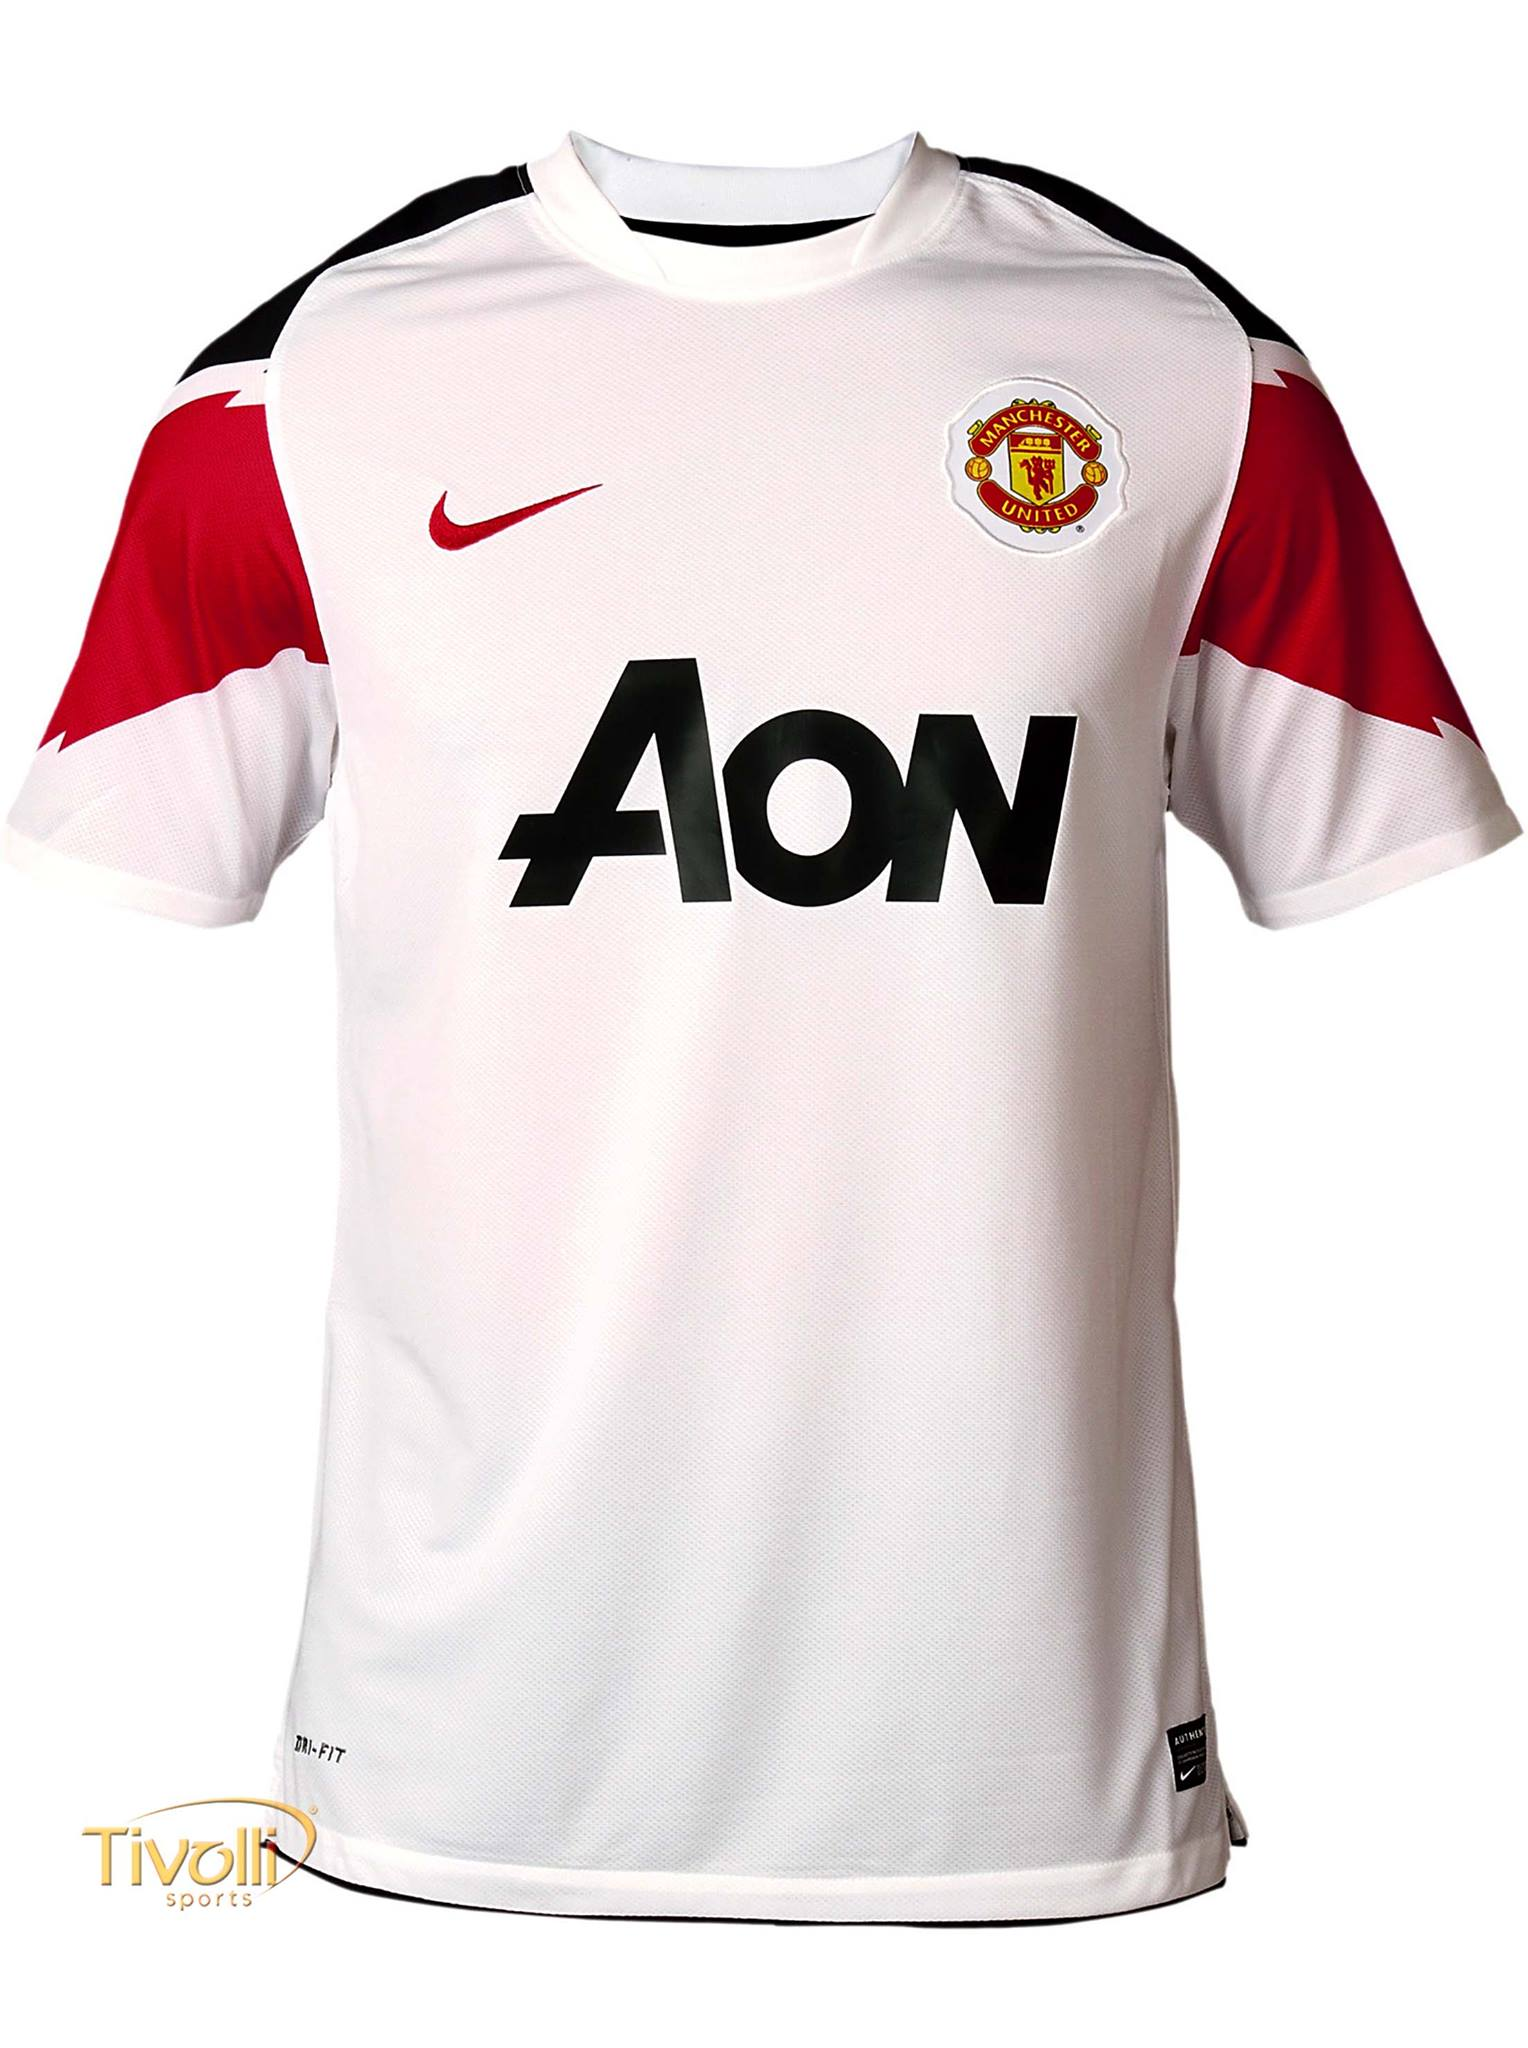 bcc0204b93 Black Friday - Camisa Manchester United II Away Nike 2010 11 Branca e  Vermelha